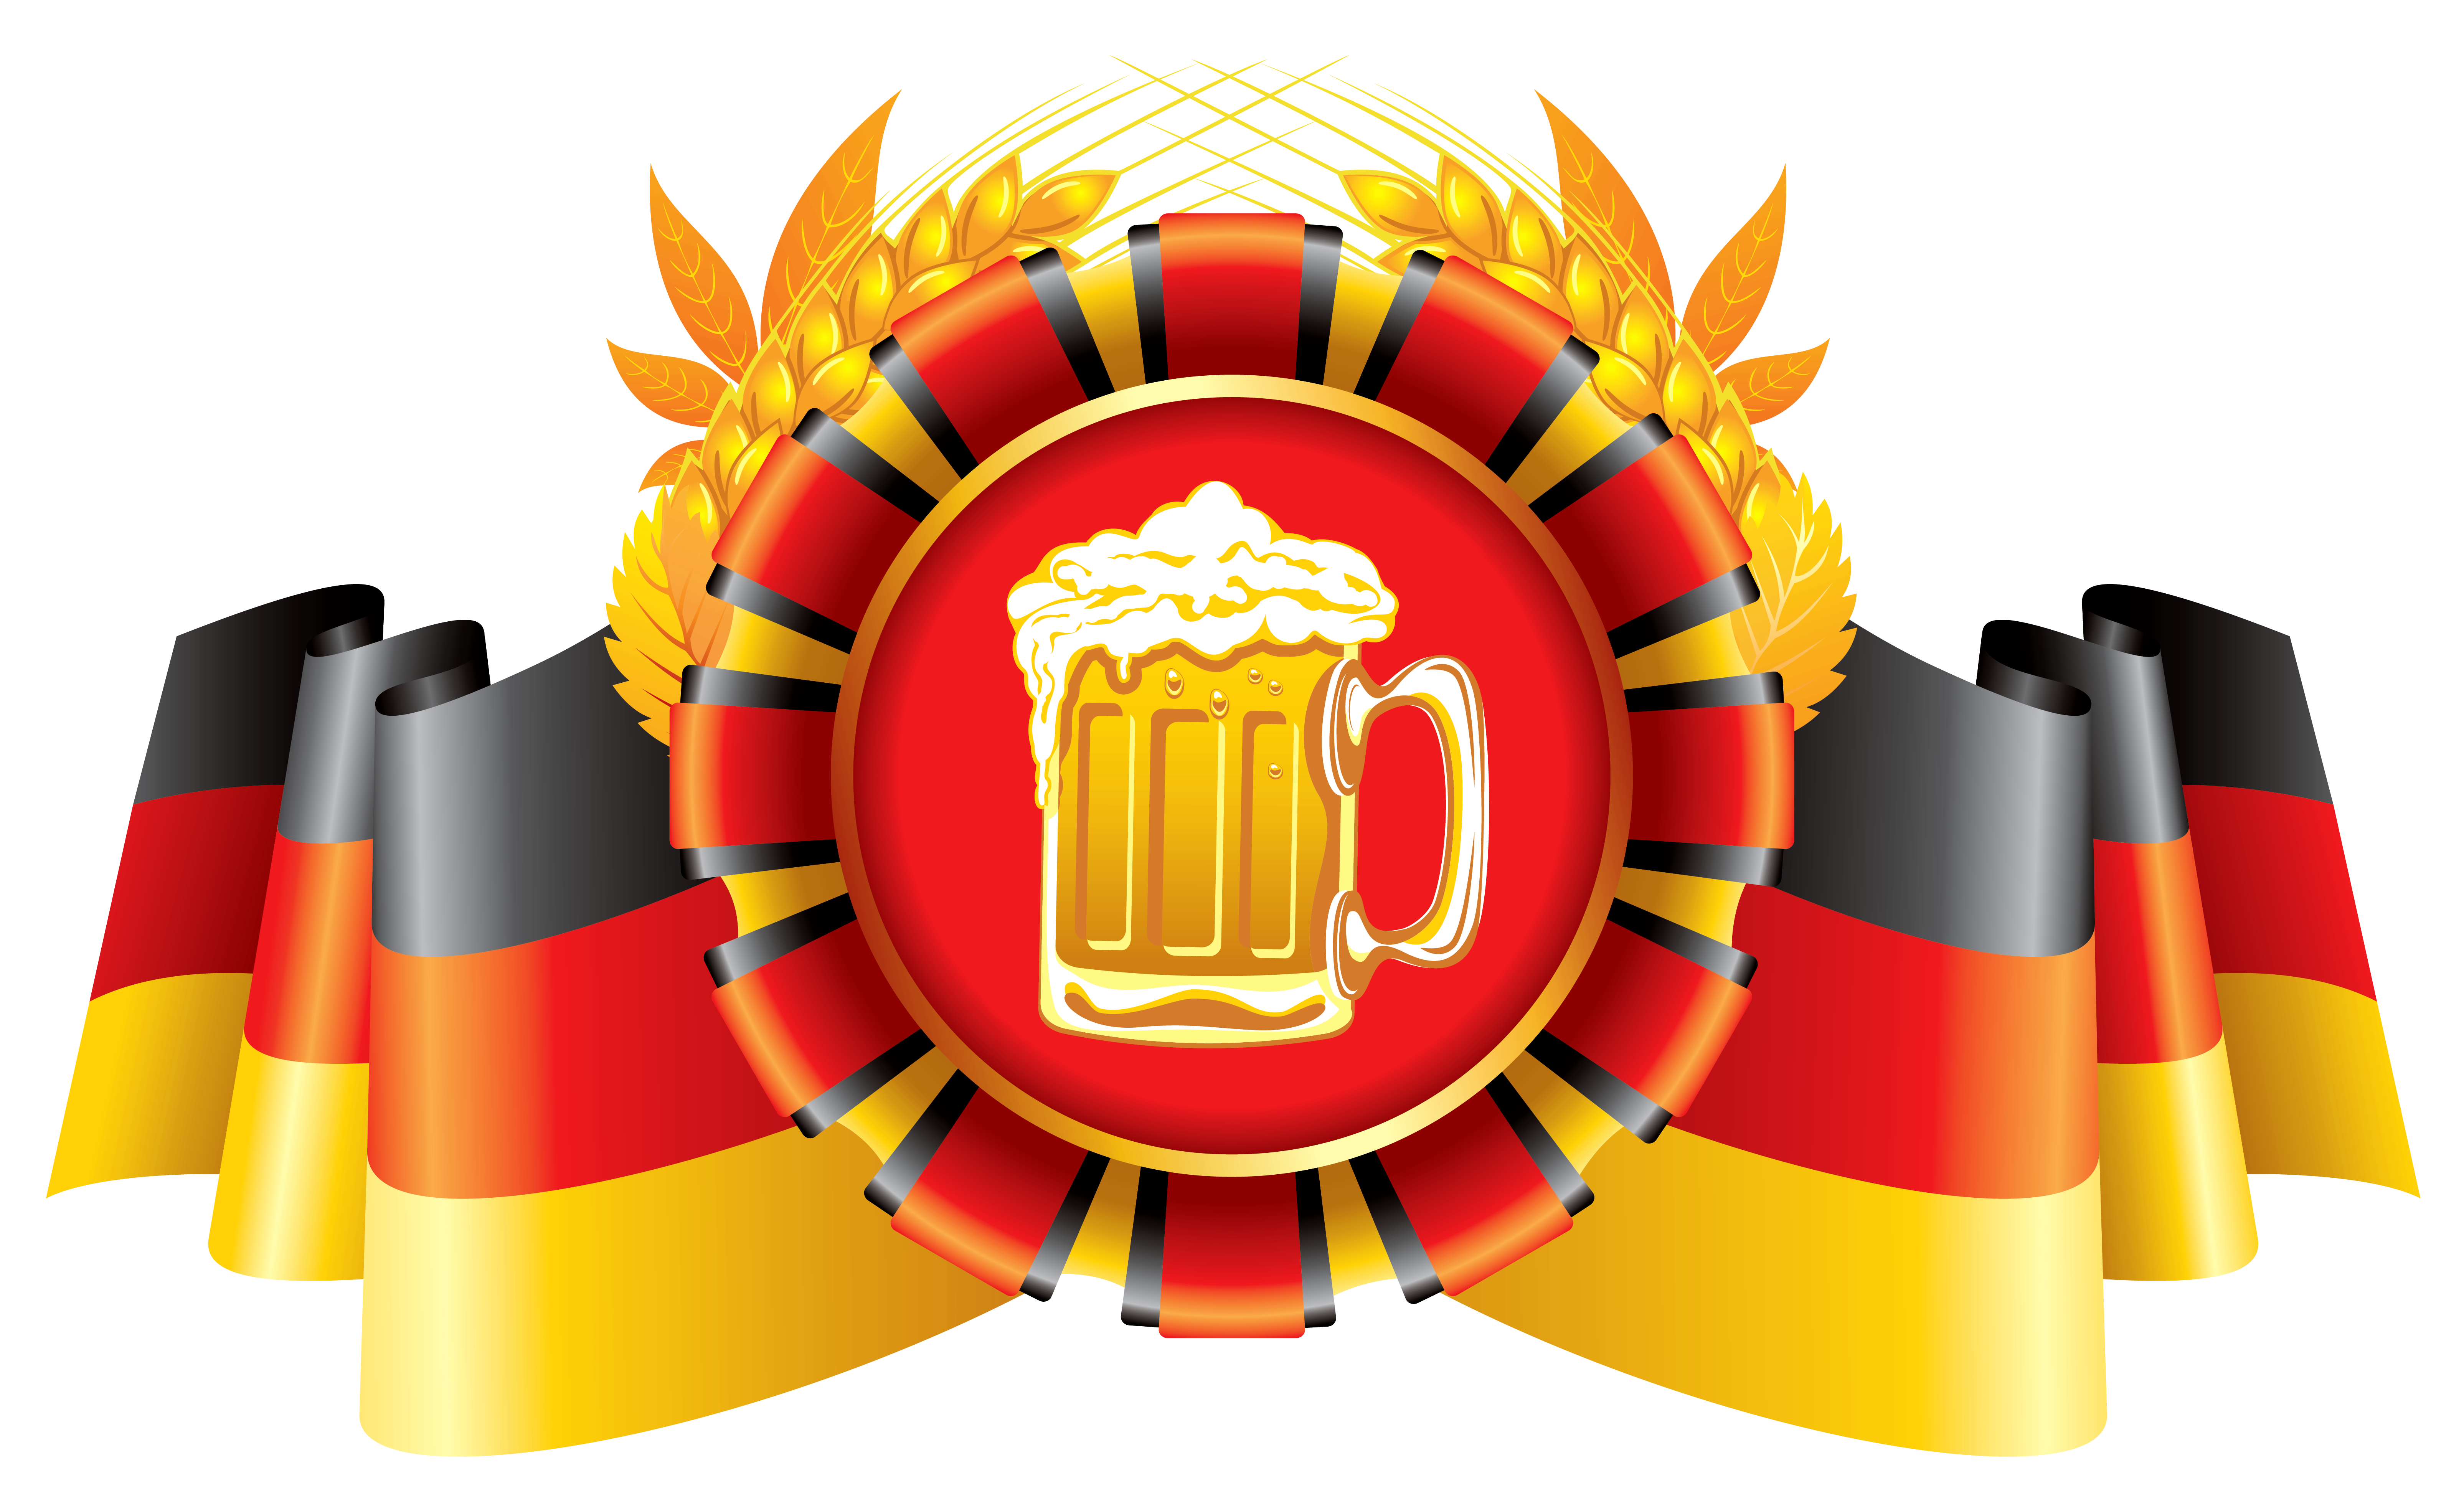 Oktoberfest Decor German Flag with Wheat and Beer PNG Image.